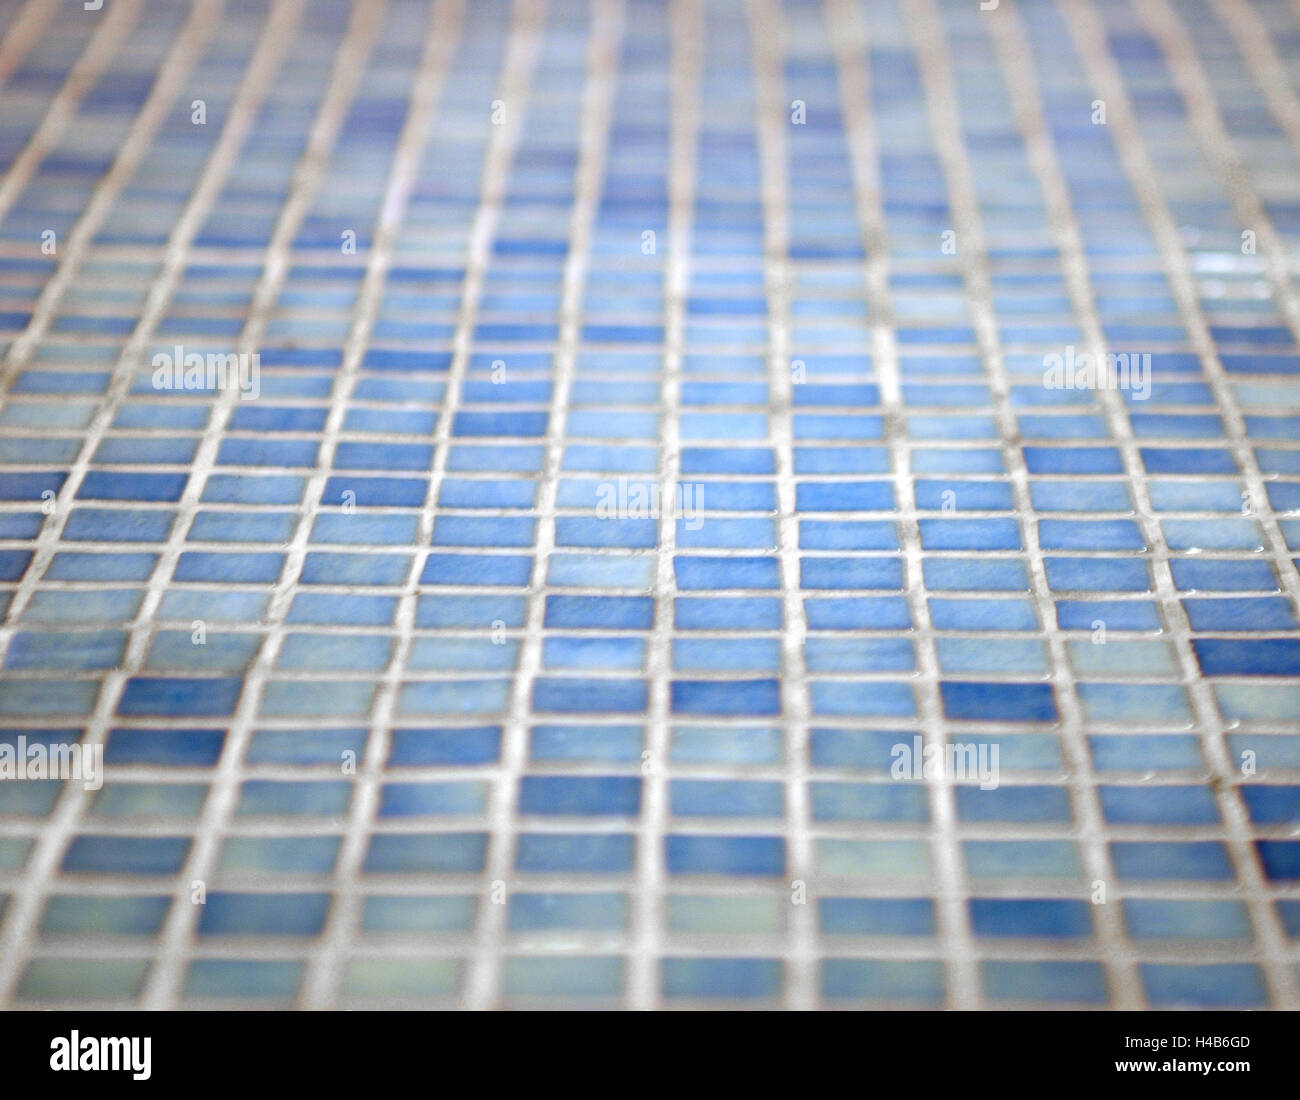 Mosaic floor, blue, floor, mosaic floor, tiles, tiled, mosaic Stock ...